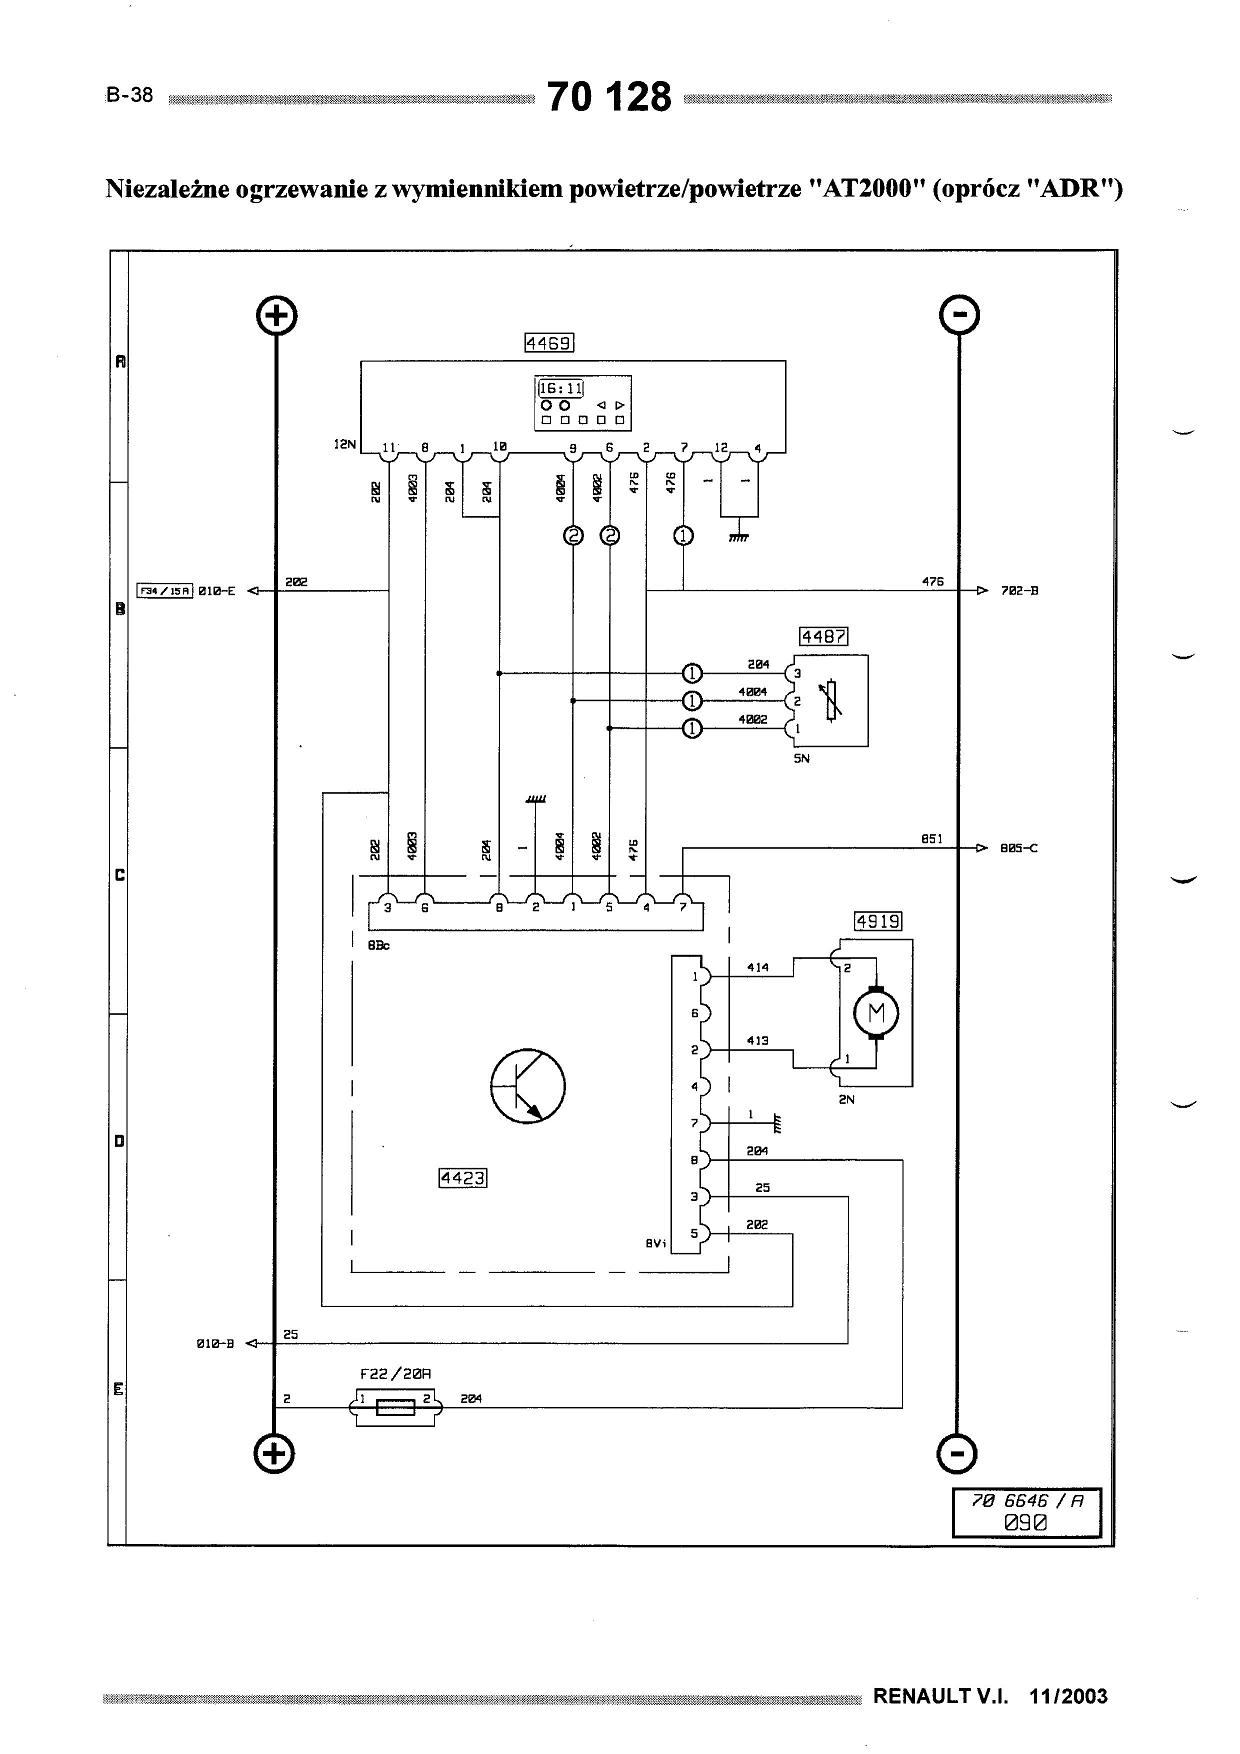 50_1229804770 webasto air top 2000 st wiring diagram efcaviation com webasto air top 2000 st wiring diagram at reclaimingppi.co